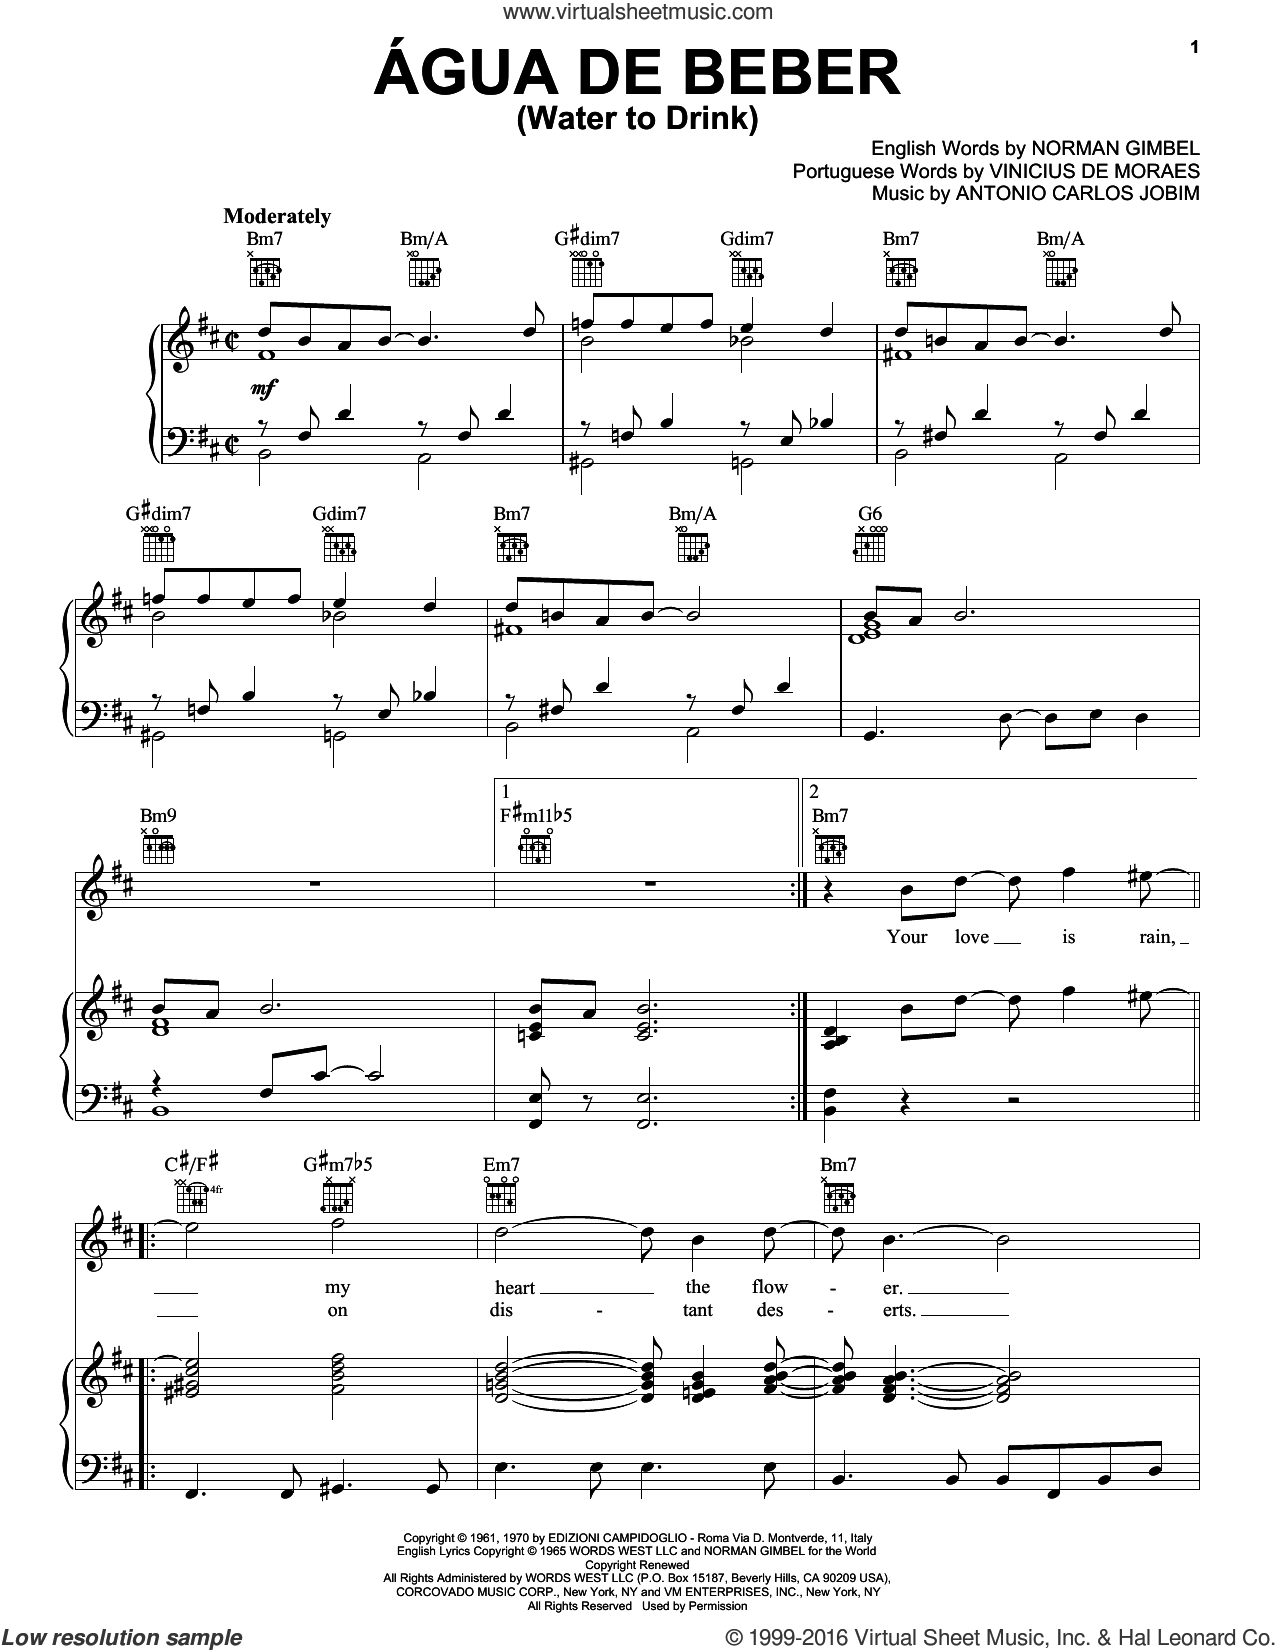 Agua De Beber (Water To Drink) sheet music for voice, piano or guitar by Vinicius de Moraes